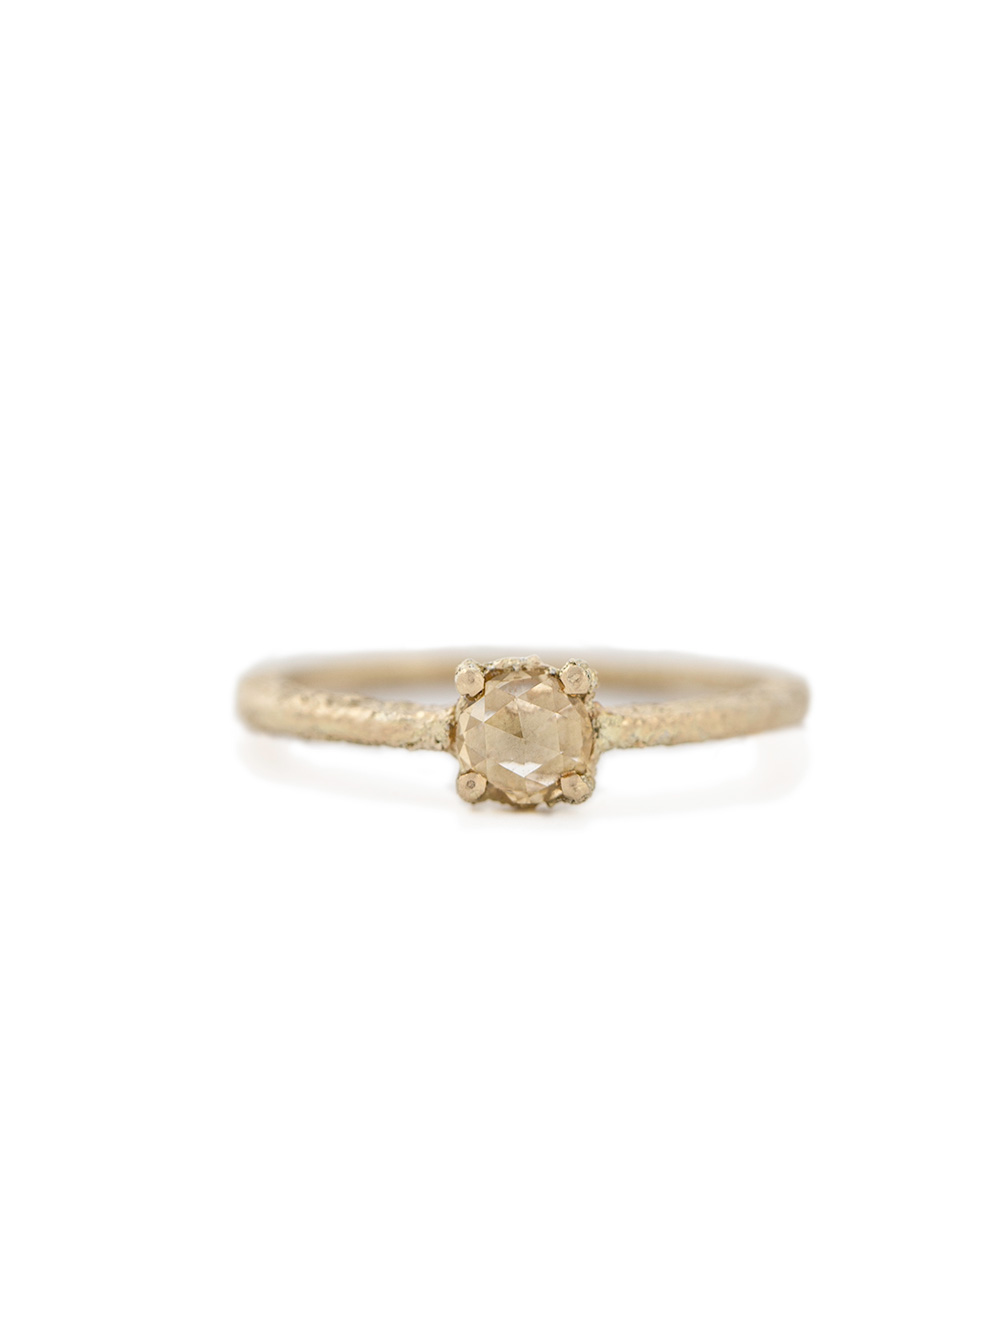 Rose cut yellow diamond ring in yellow gold, £1280